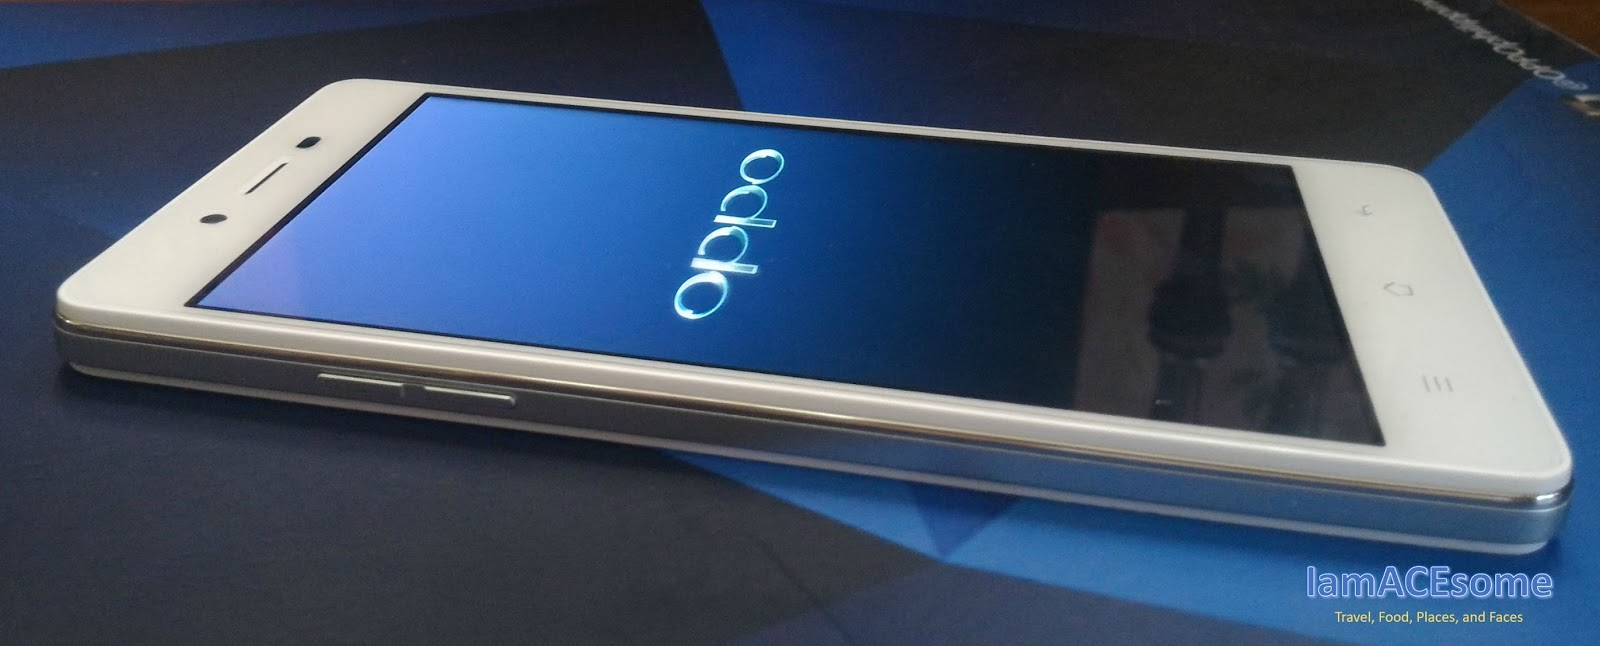 New Oppo Mirror 5 A Spark Of Brilliance Iamacesome 16gb With Bi Metallic Frame And Cross Beams For Exceptional Strength Durability Coming Together To Create Tough Skeleton Within The Inch